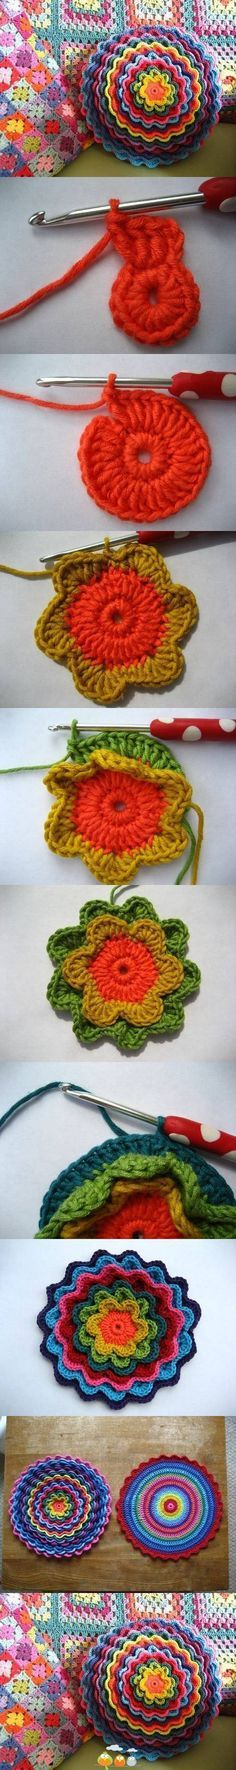 I have made this pillow and it turns out beautiful. flower pillow. Follow @Wendy Felts Felts Felts Dough For More Crochet posts